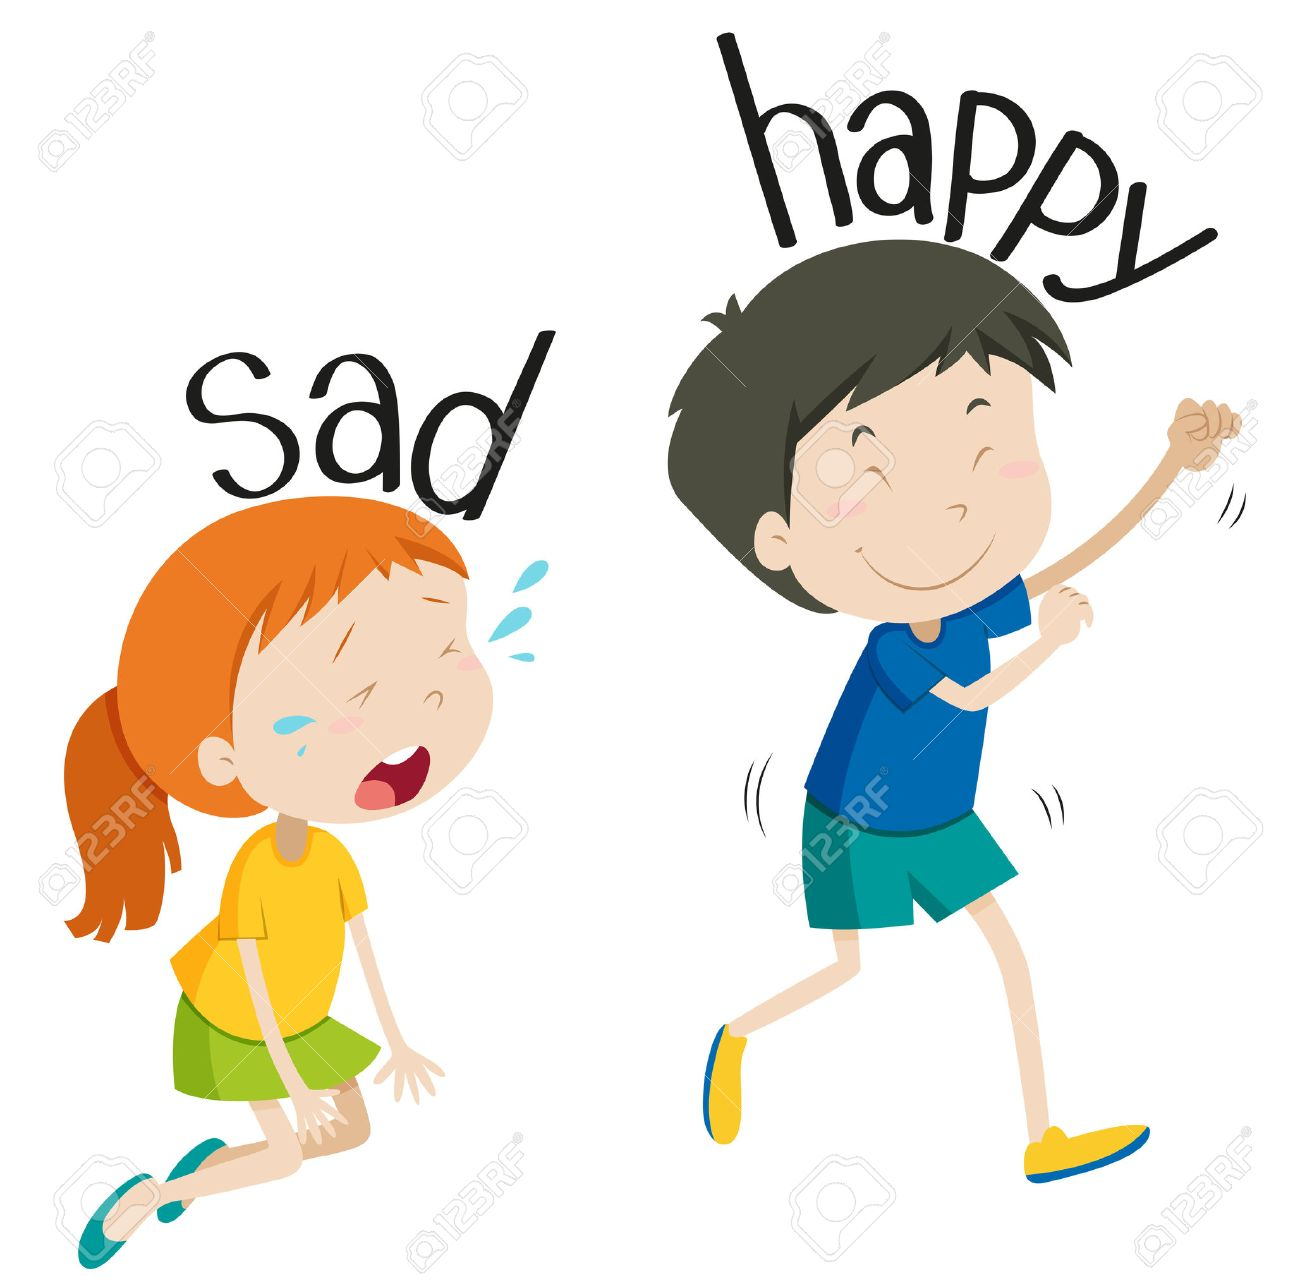 Opposite Adjective Sad And Happy Illustration Royalty Free ...